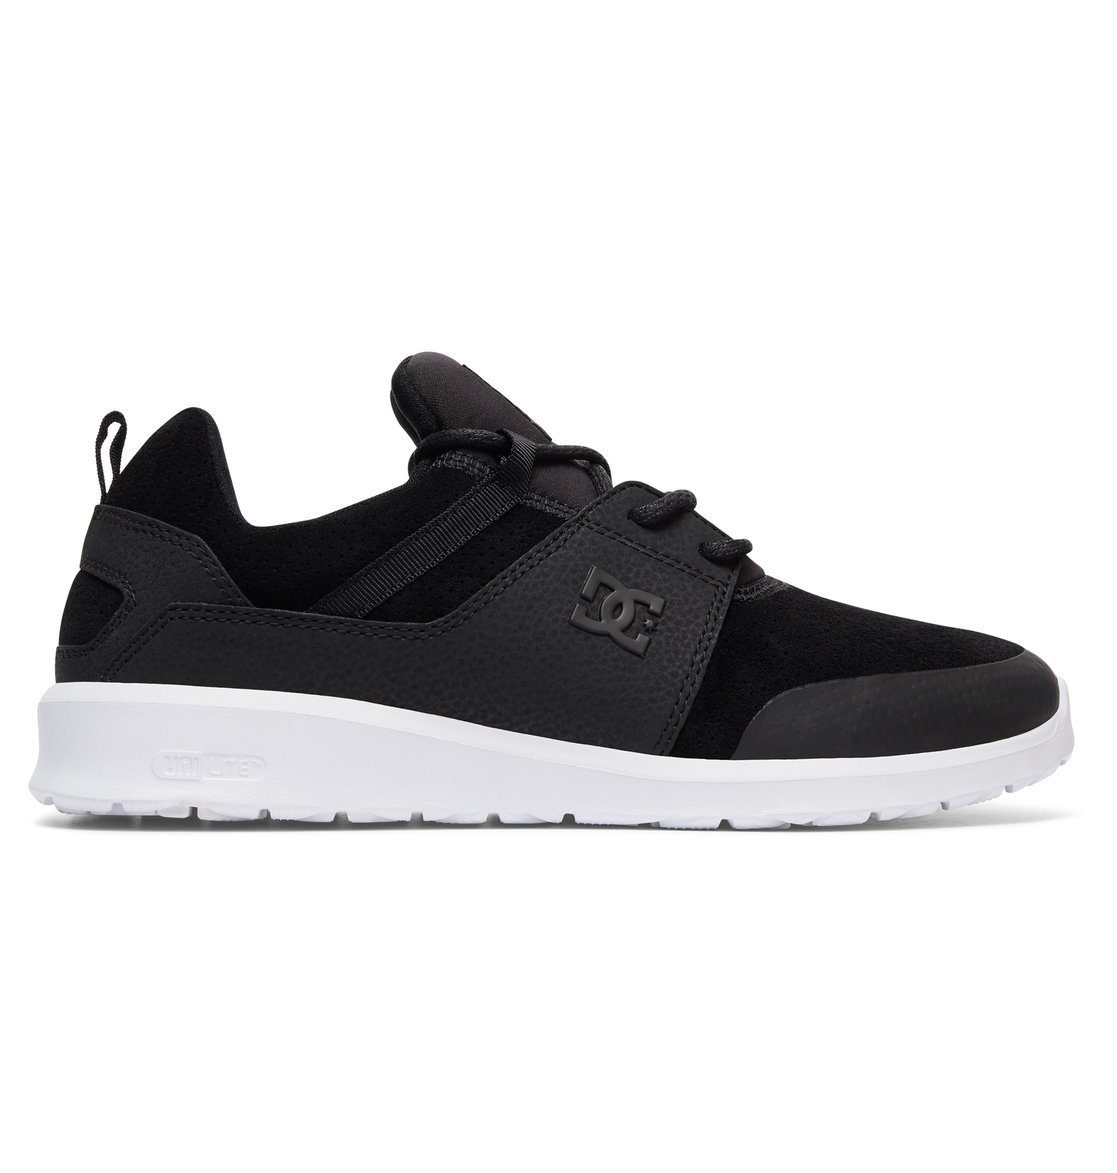 Dc Shoes Chaussures Noires Taille 45 Hommes N2nnM